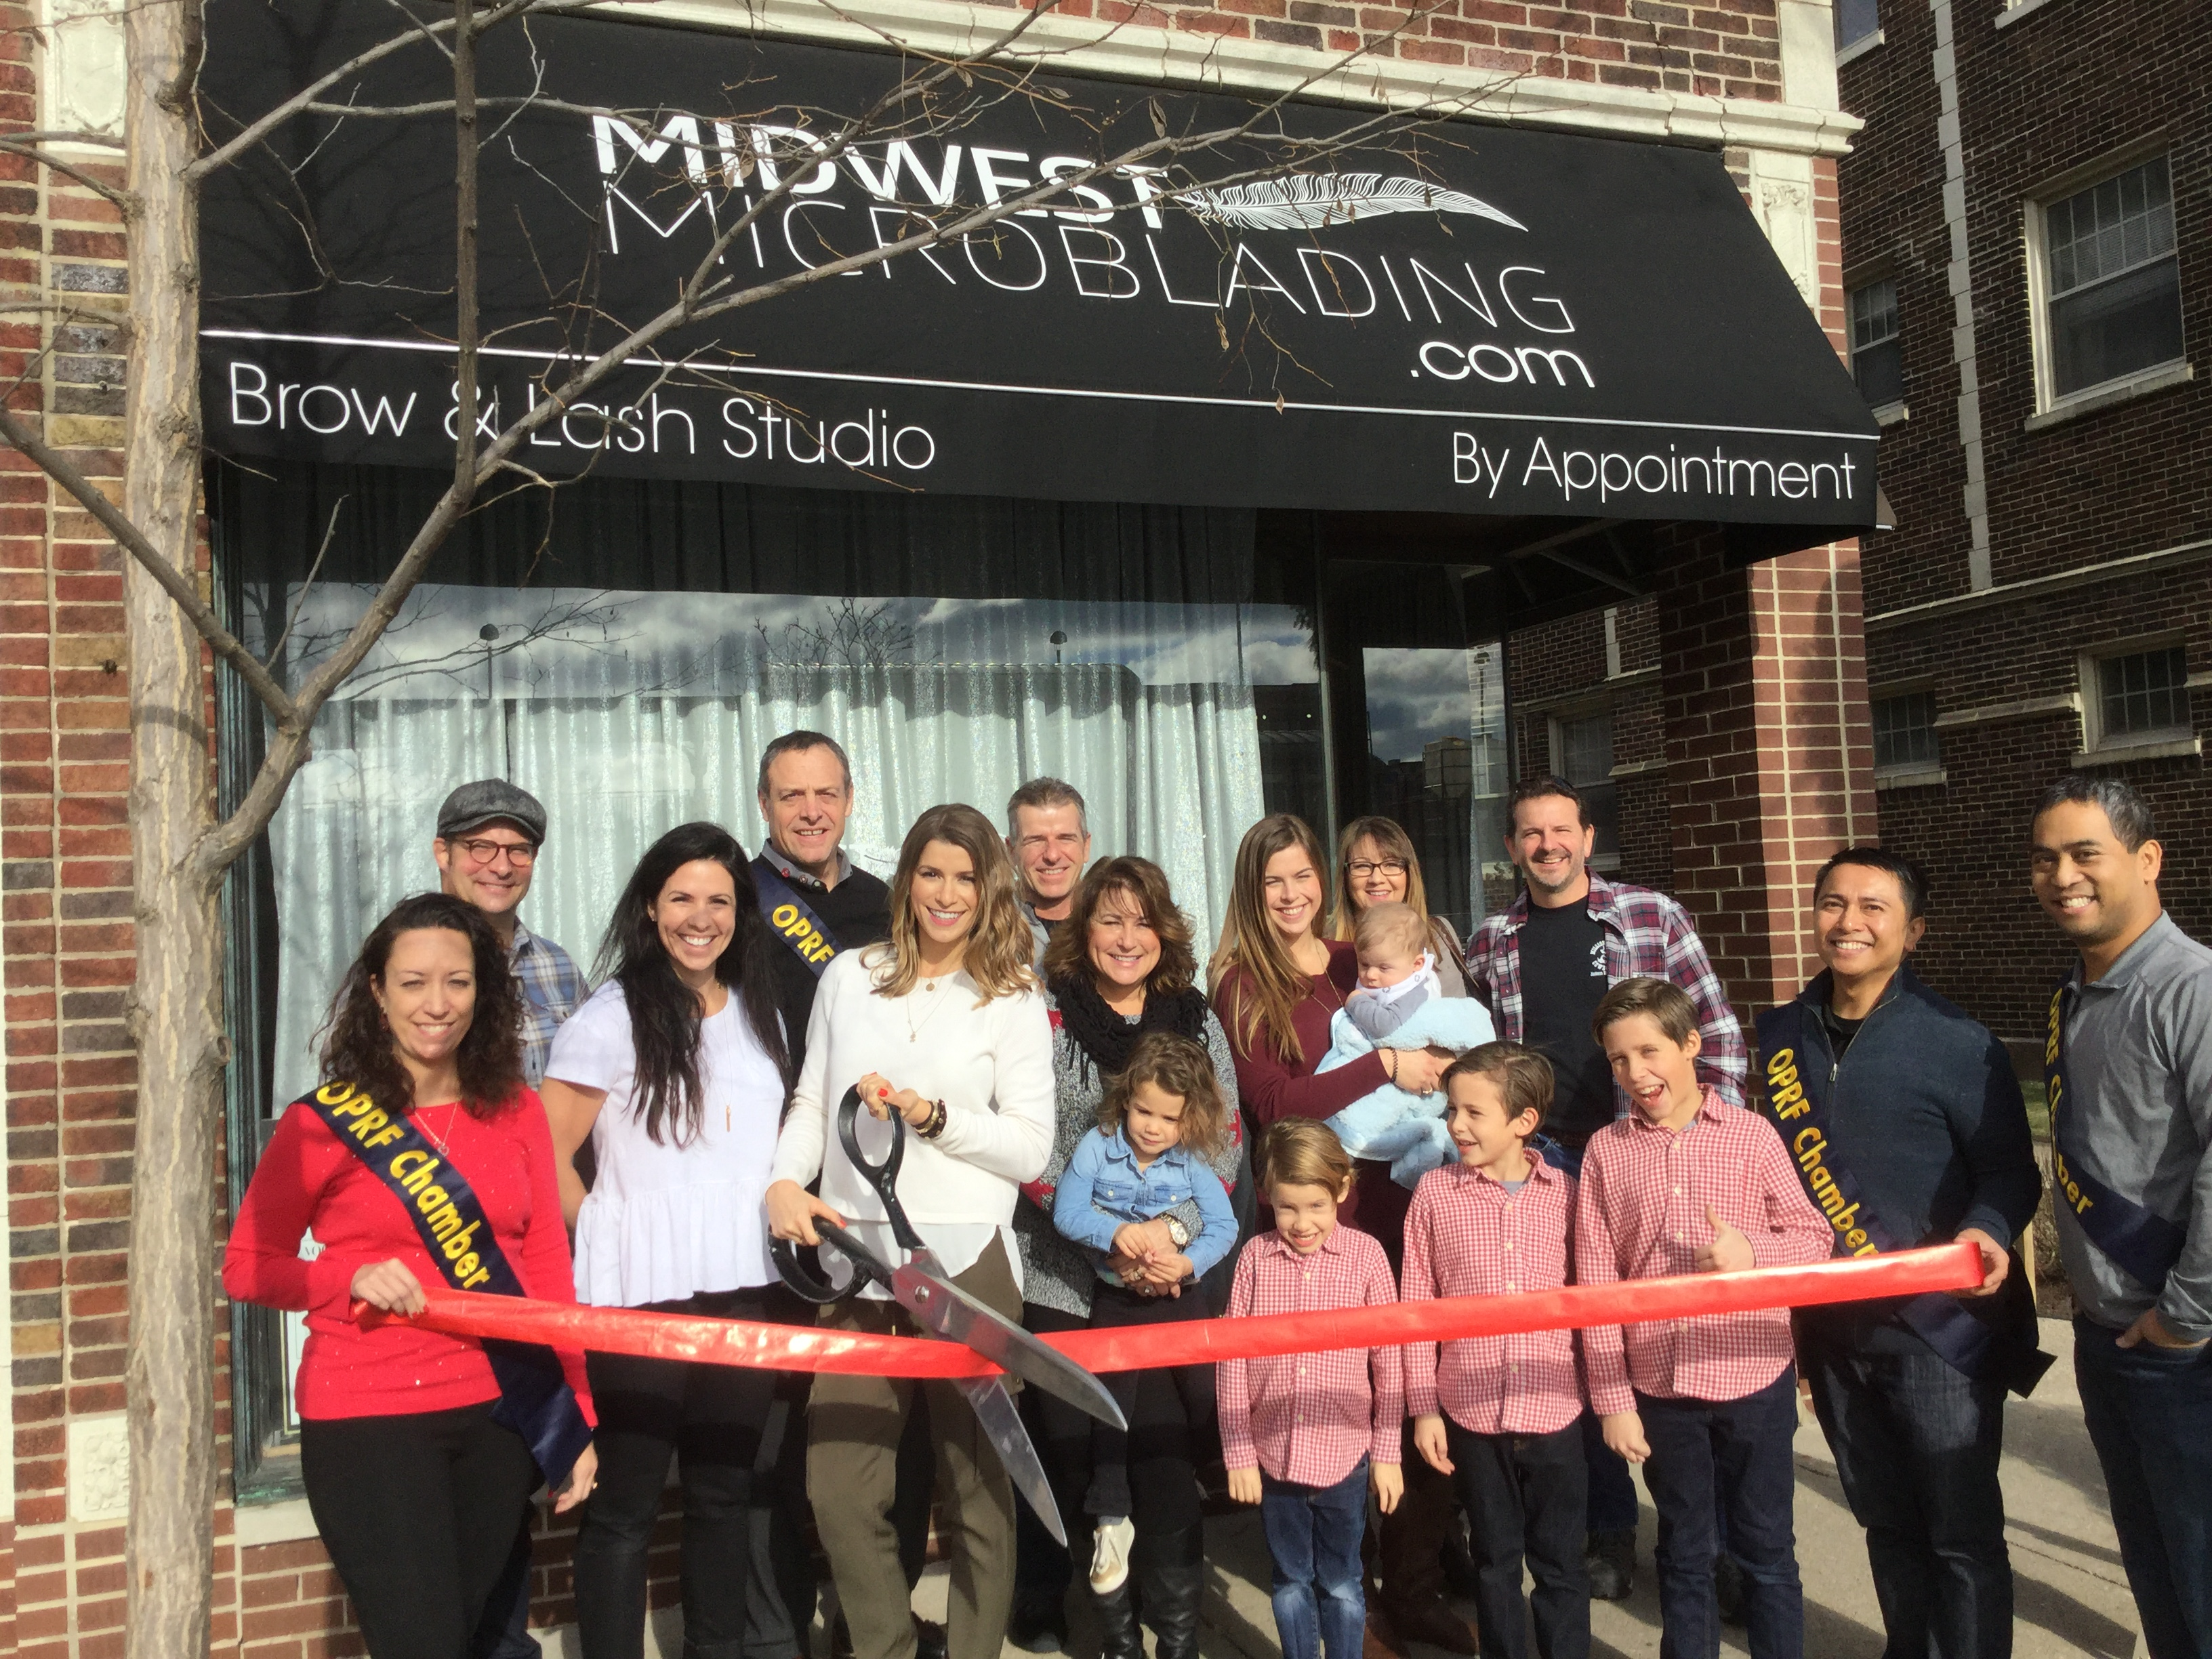 Midwest-Microblading-anniversary-ribbon-cutting-2017.JPG